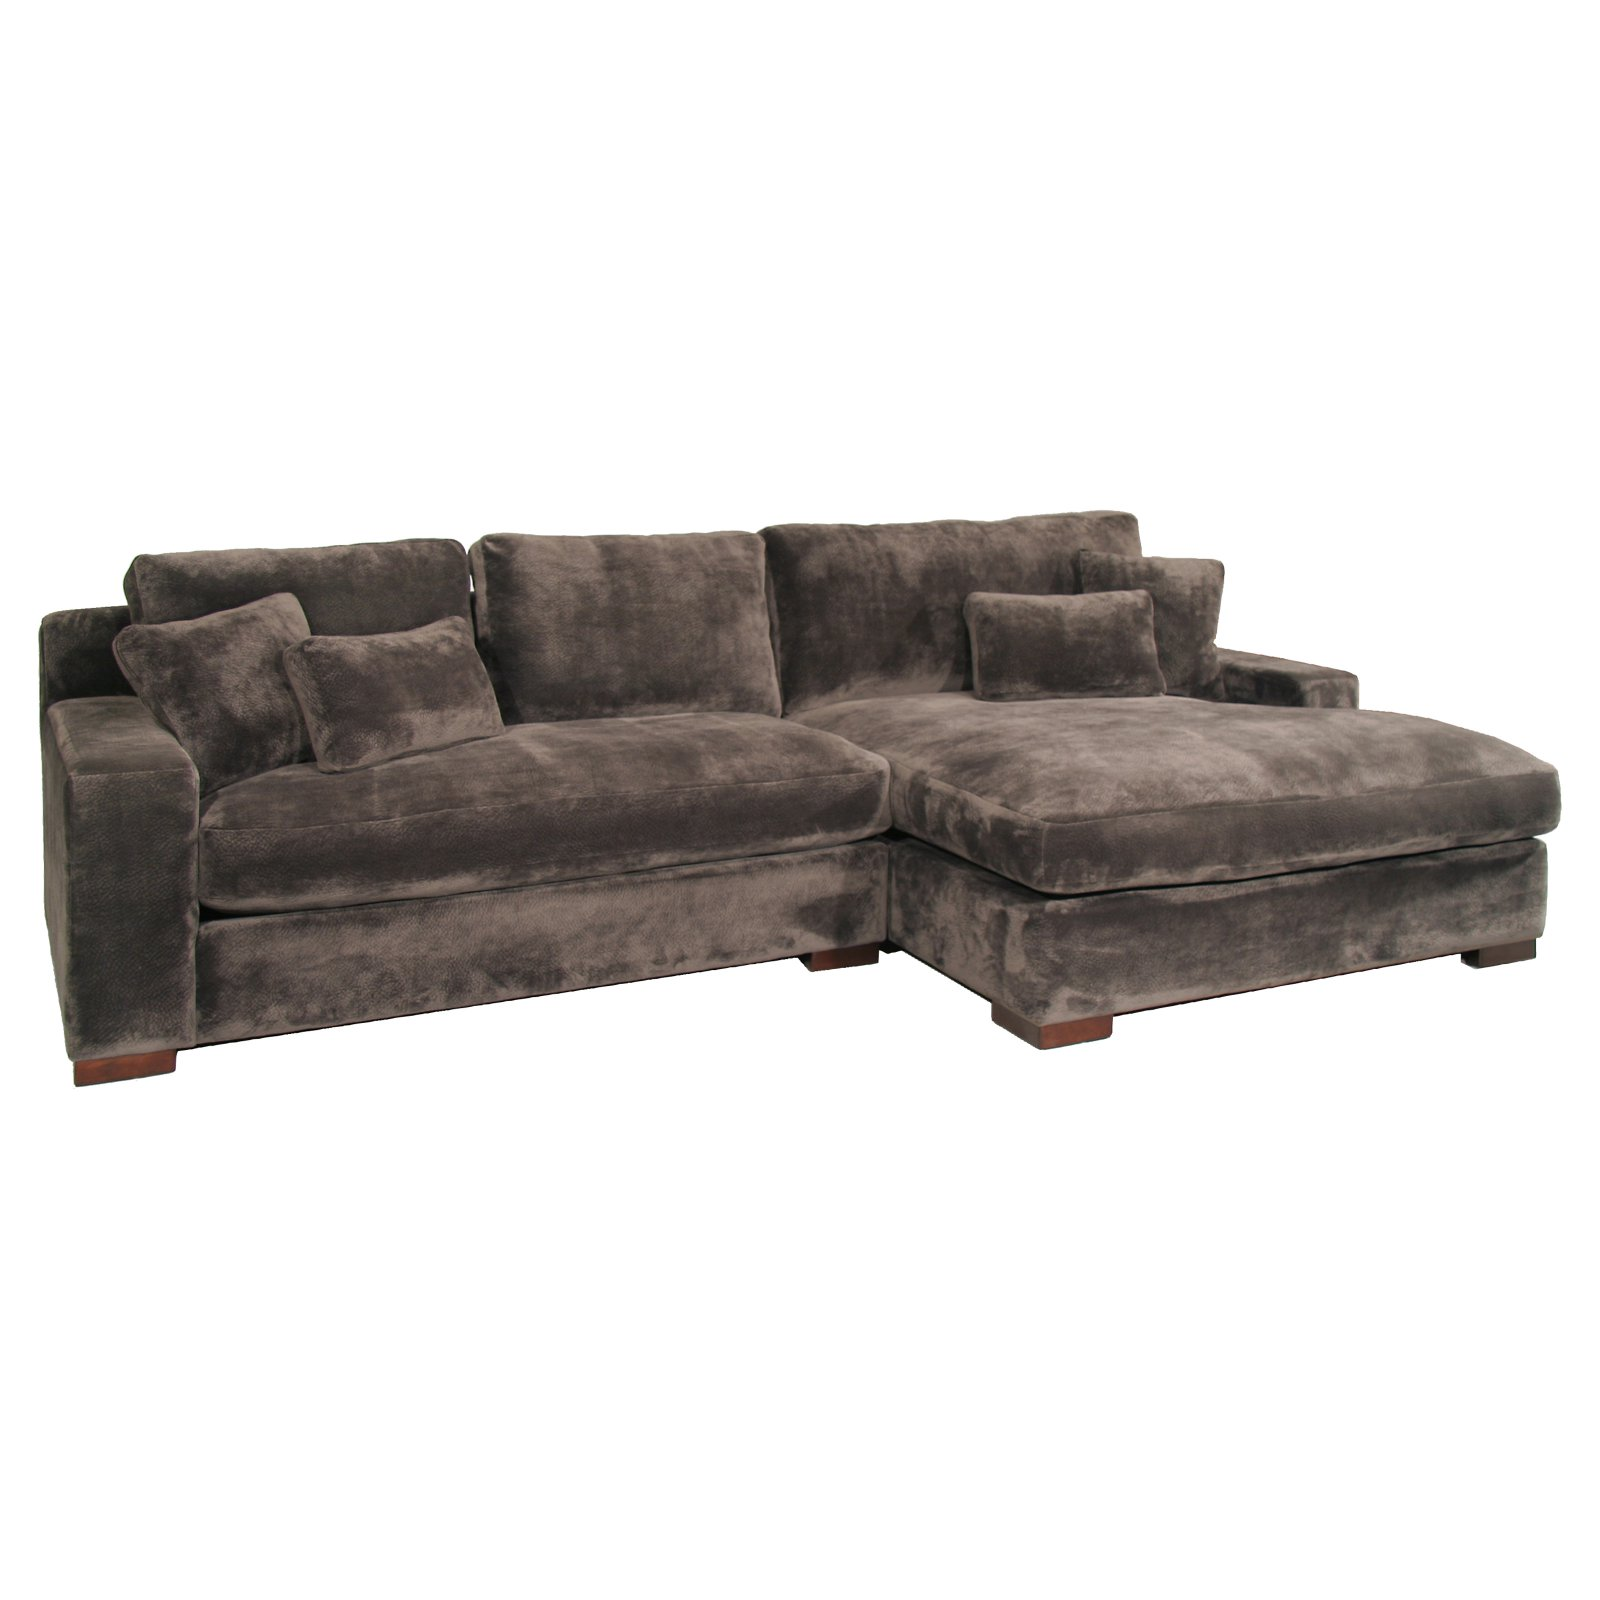 Fairmont Designs Doris 2 Piece Sectional Sofa Sectional Sofa 2